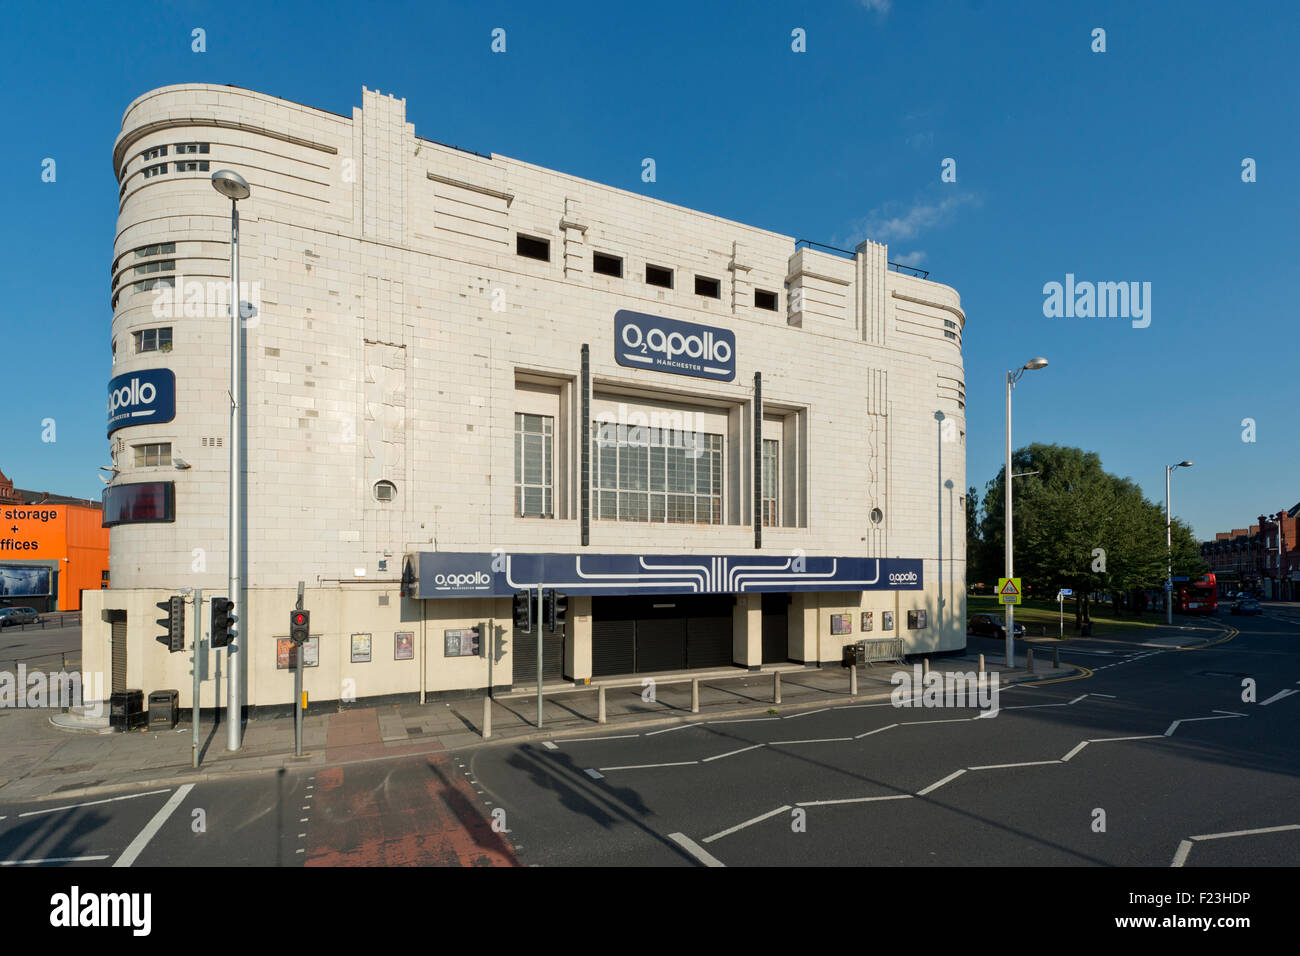 The O2 Apollo music venue on Stockport Road, Ardwick Green, in Manchester (Editorial use only). - Stock Image